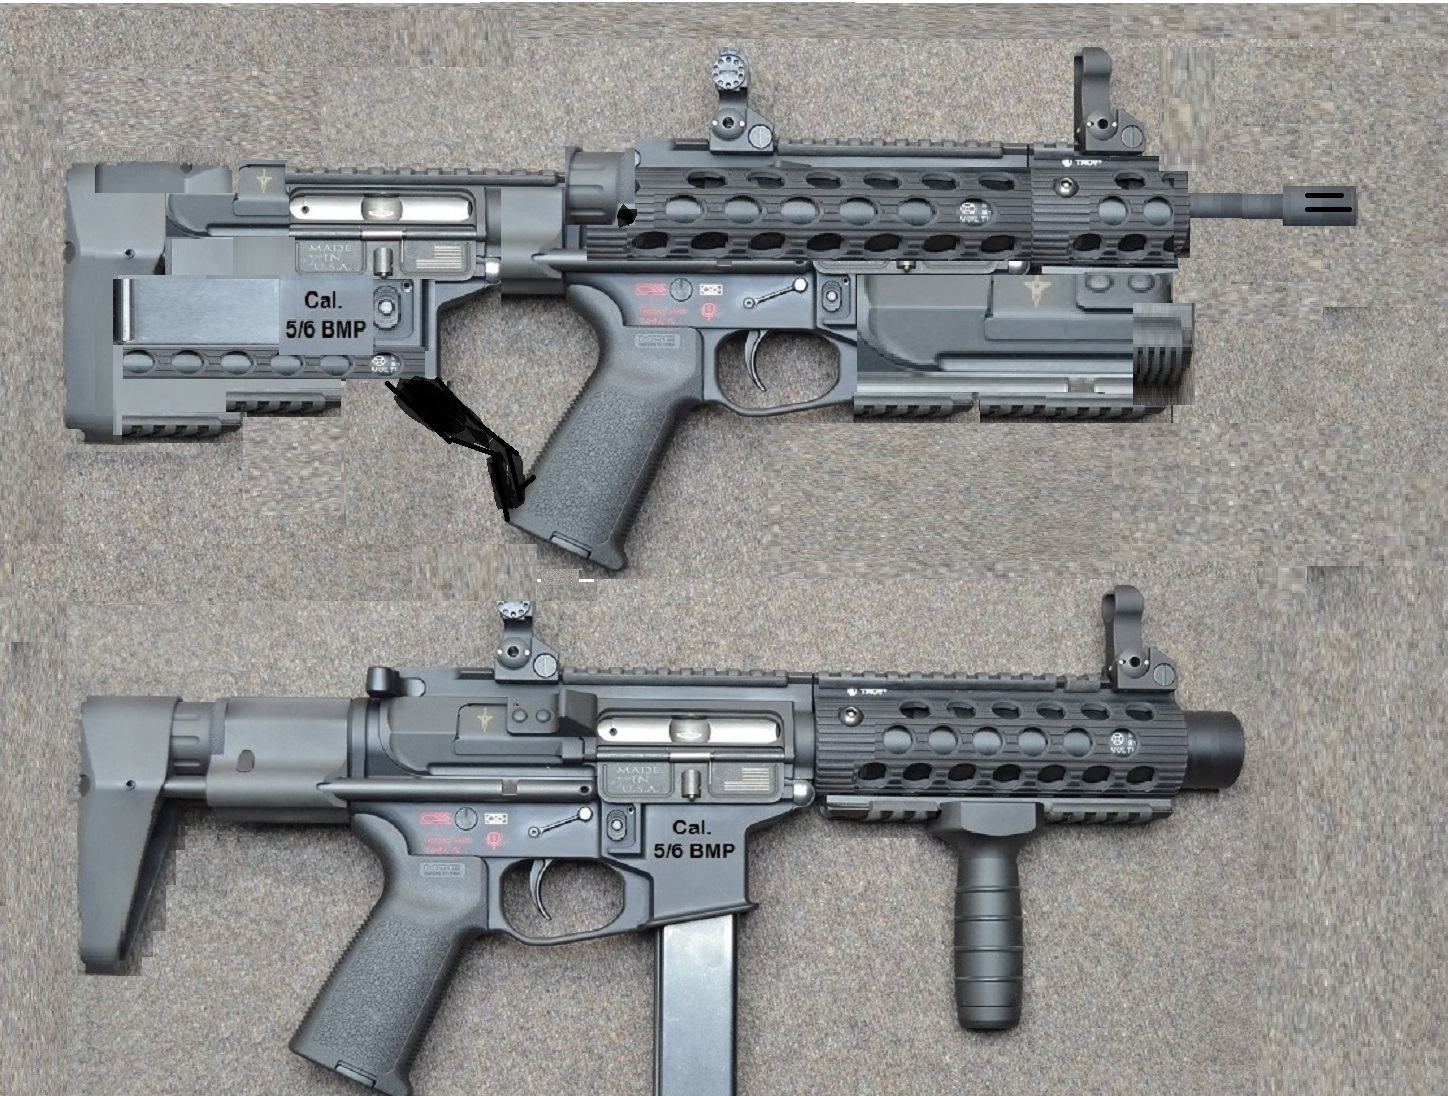 New PDW concept 28bb50n